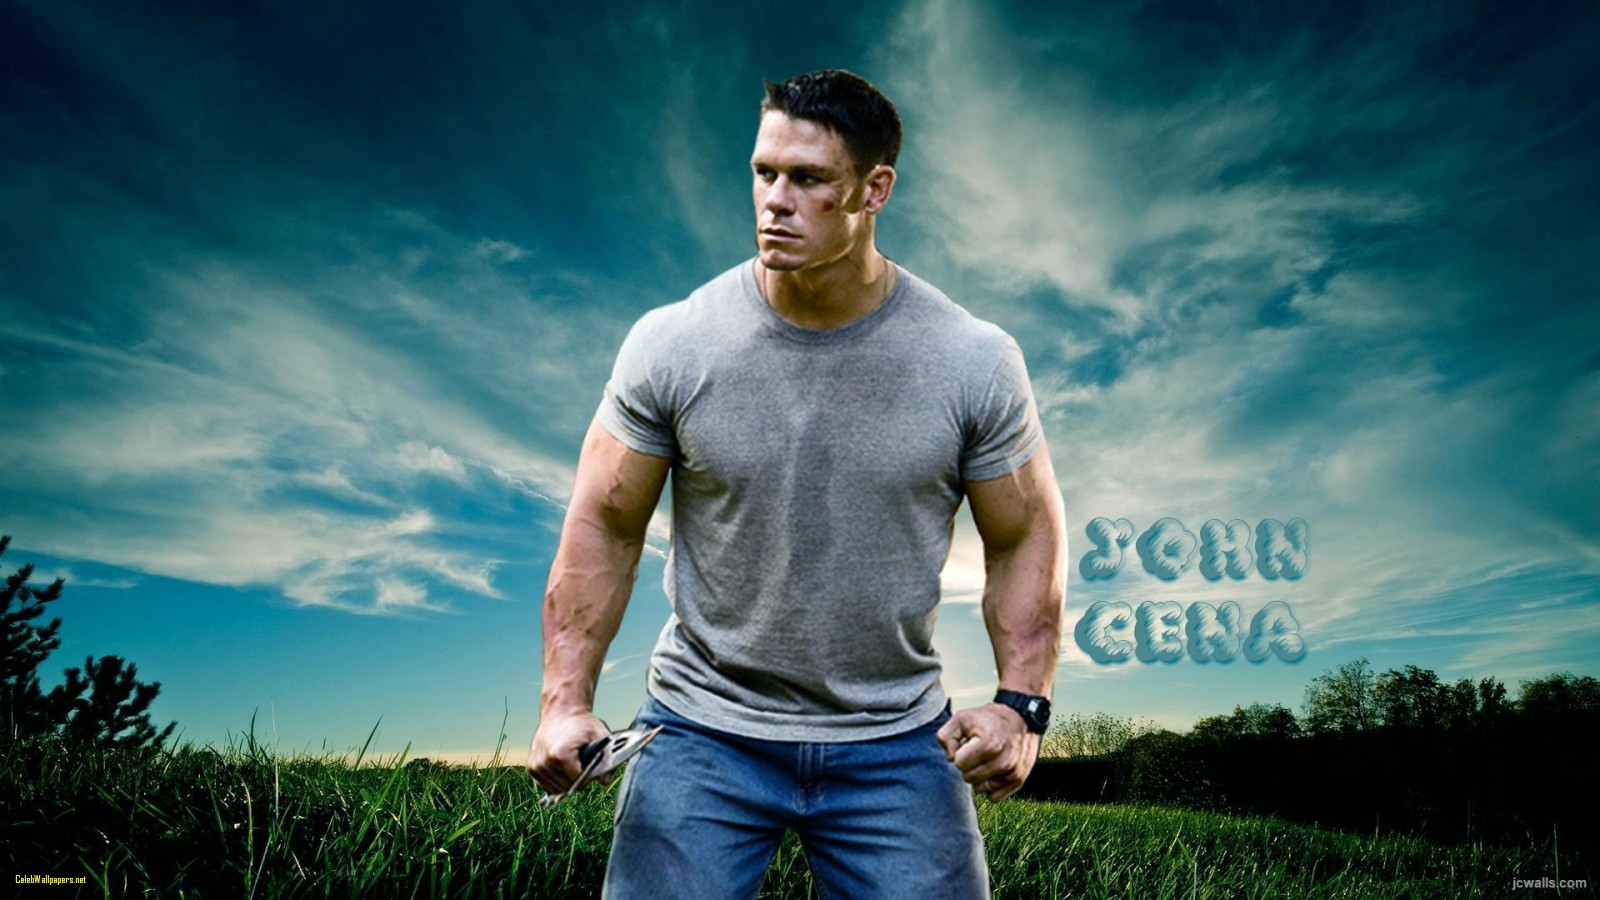 wwe john cena wallpapers hd wallpaper beautiful john cena